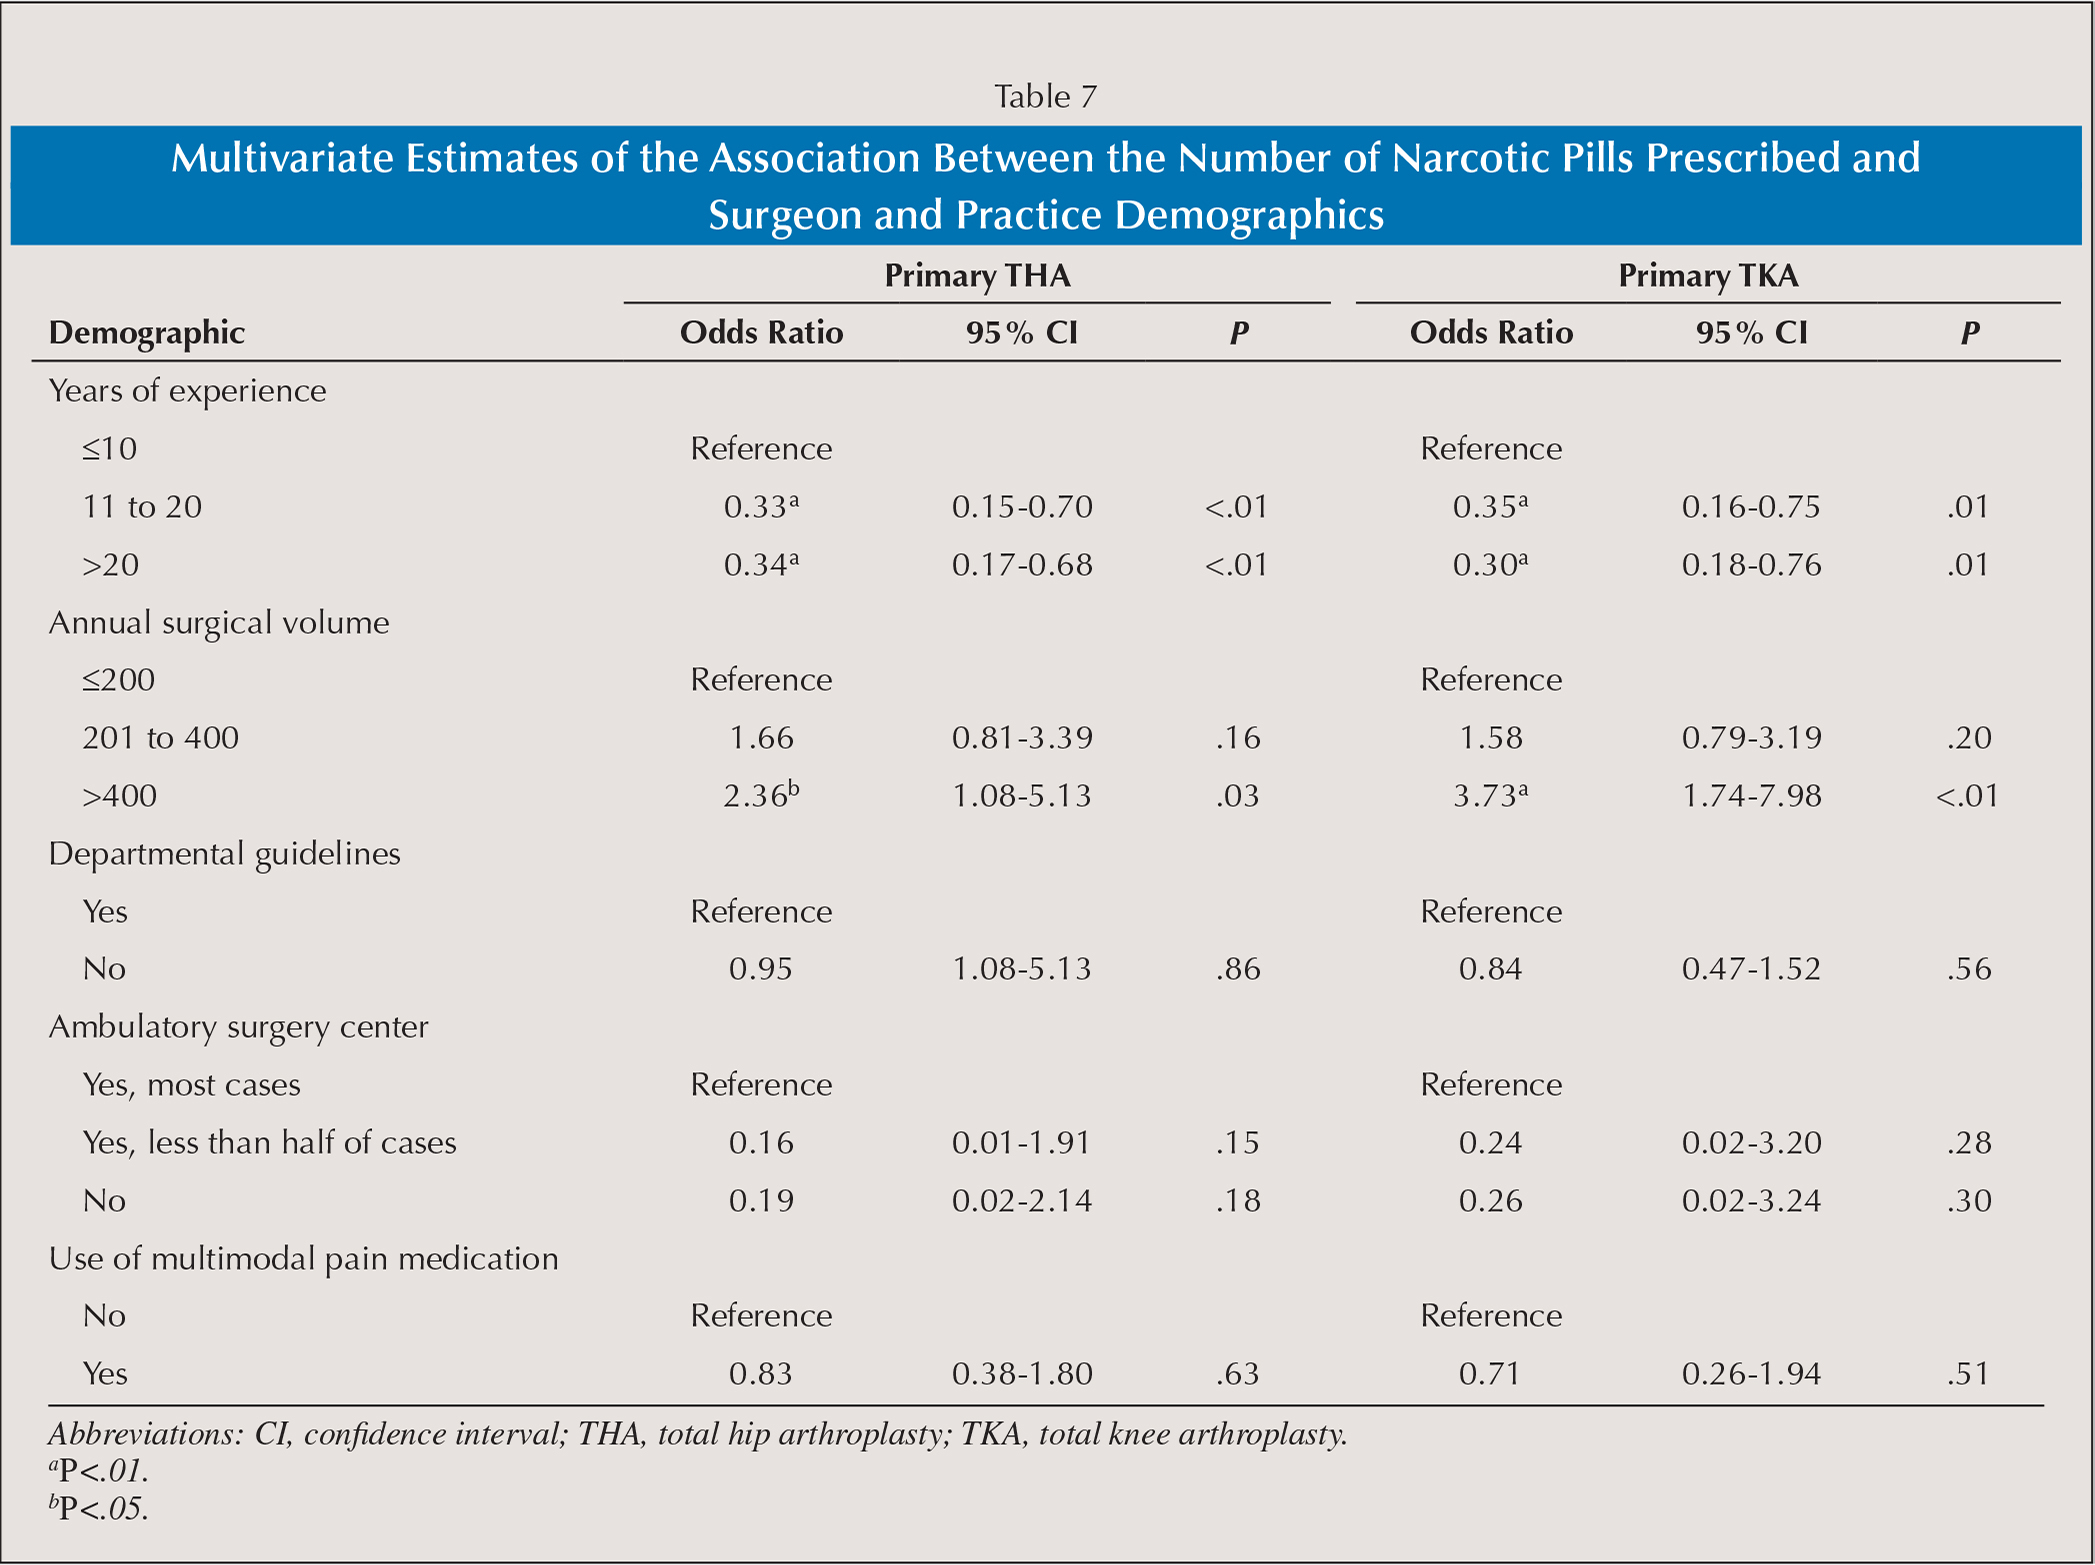 Multivariate Estimates of the Association Between the Number of Narcotic Pills Prescribed and Surgeon and Practice Demographics